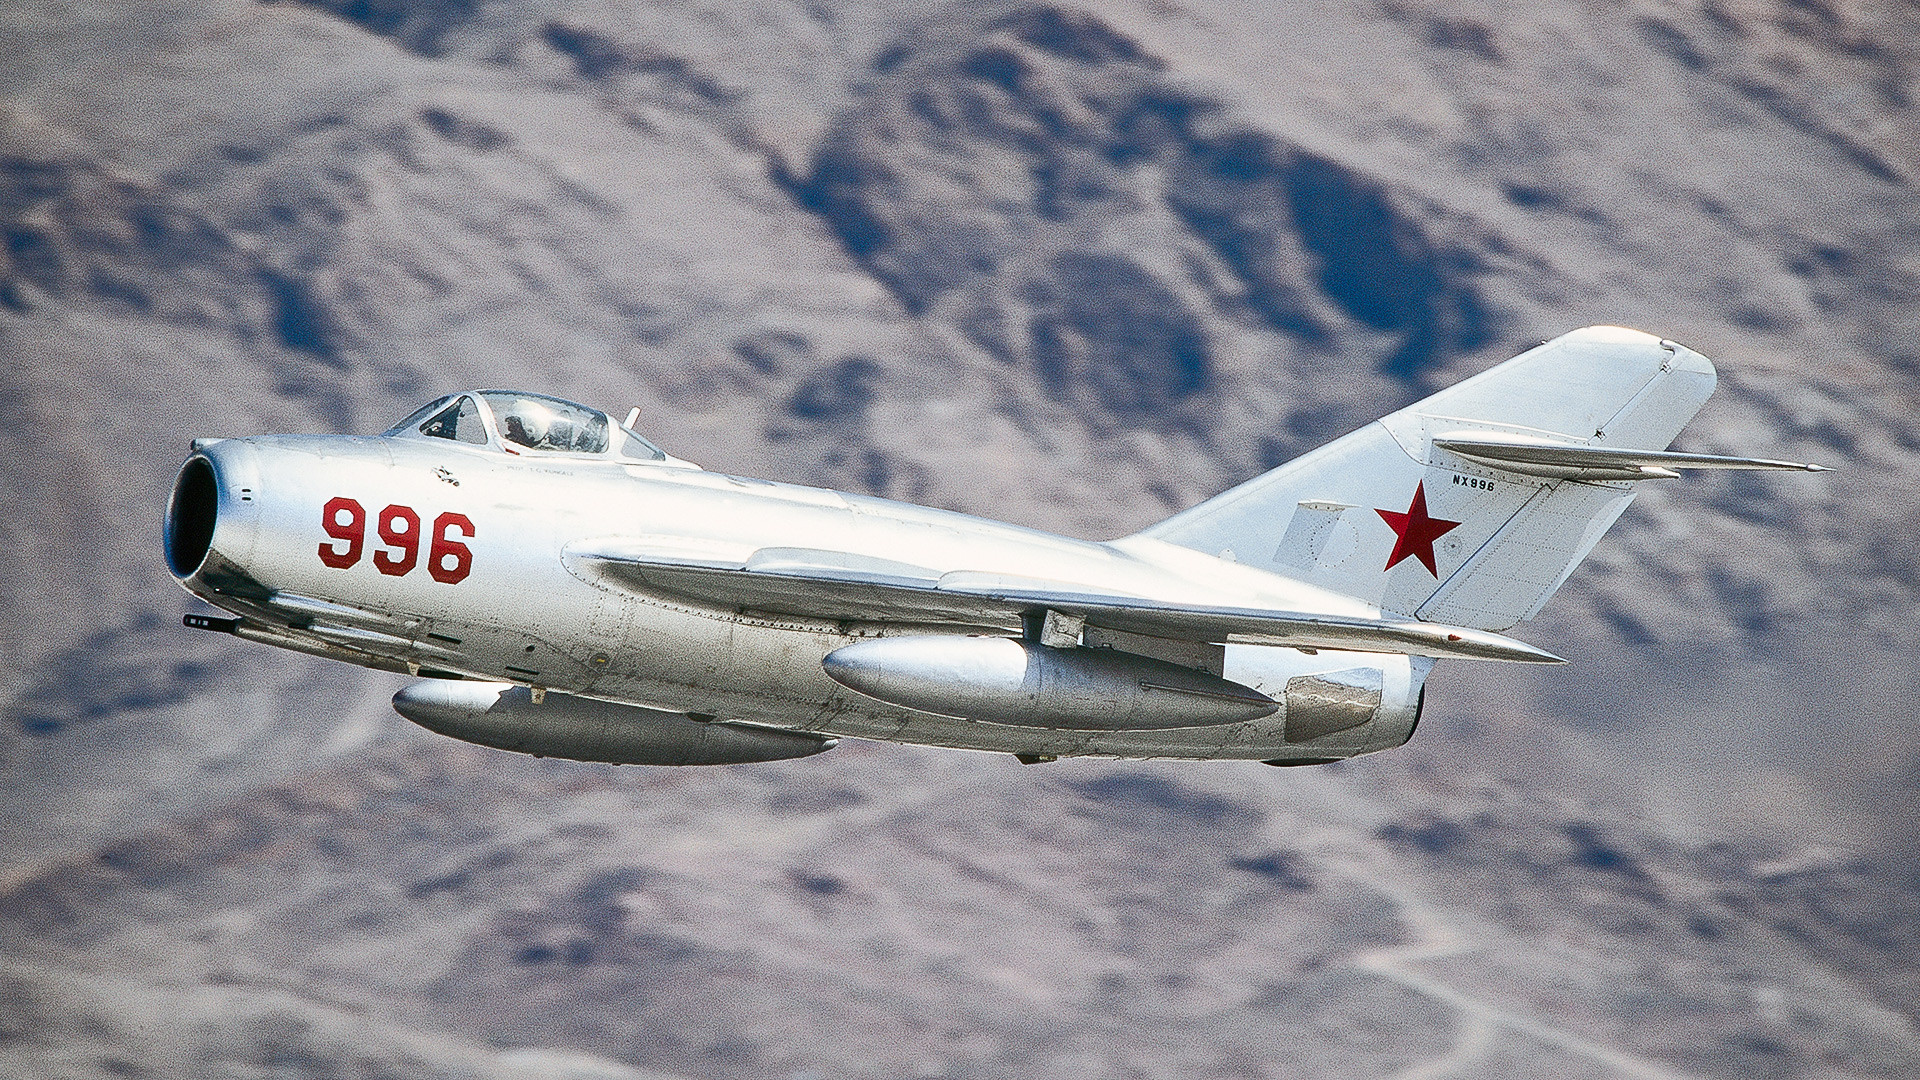 The MiG-15 is the most prolific jet fighter ever produced